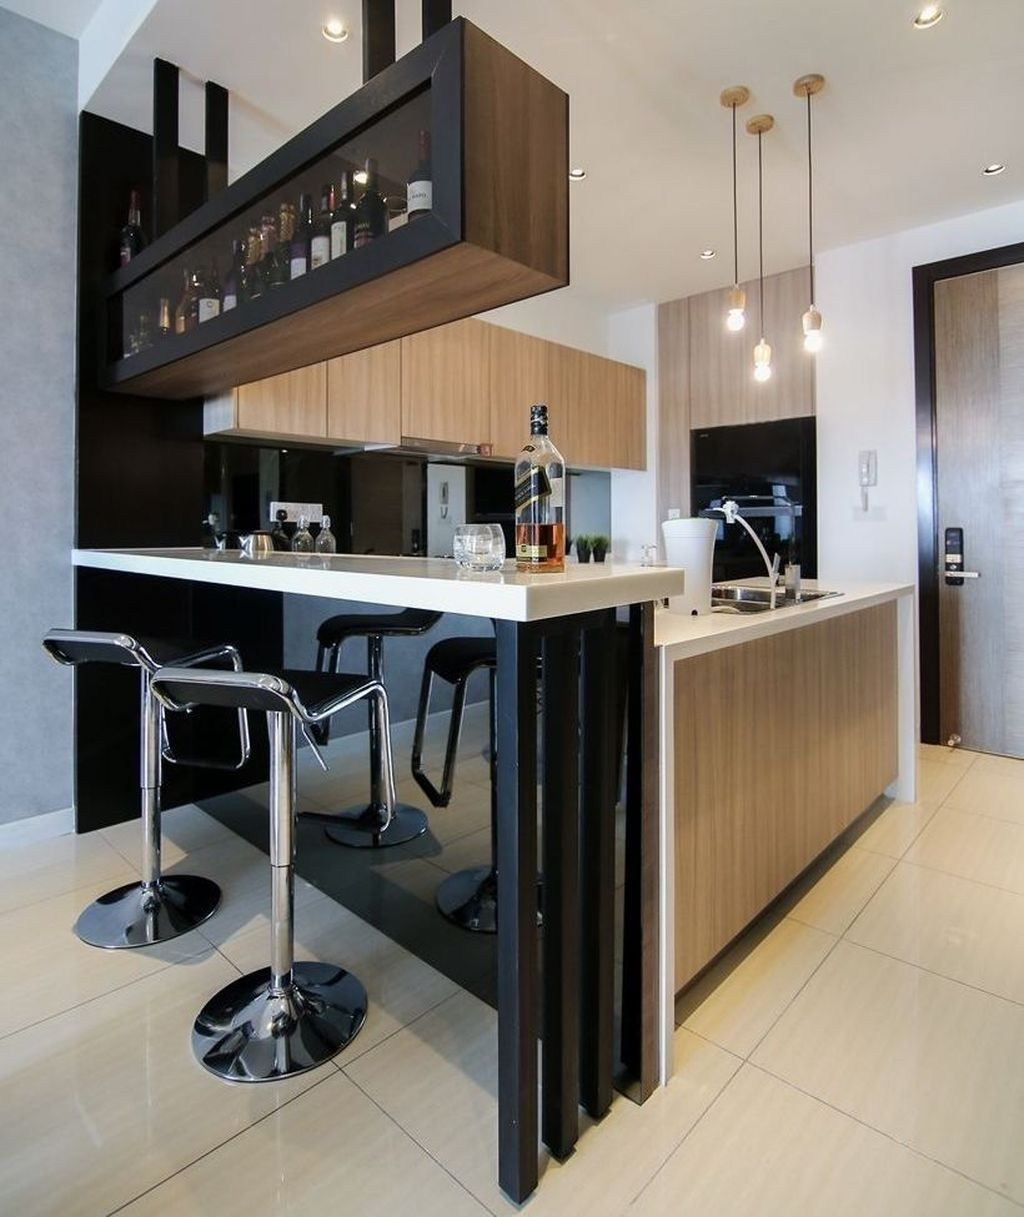 53 Lovely Small Kitchen Bar Design For Apartment Home By X Kitchen Bar Design Modern Kitchen Bar Kitchen Design Small